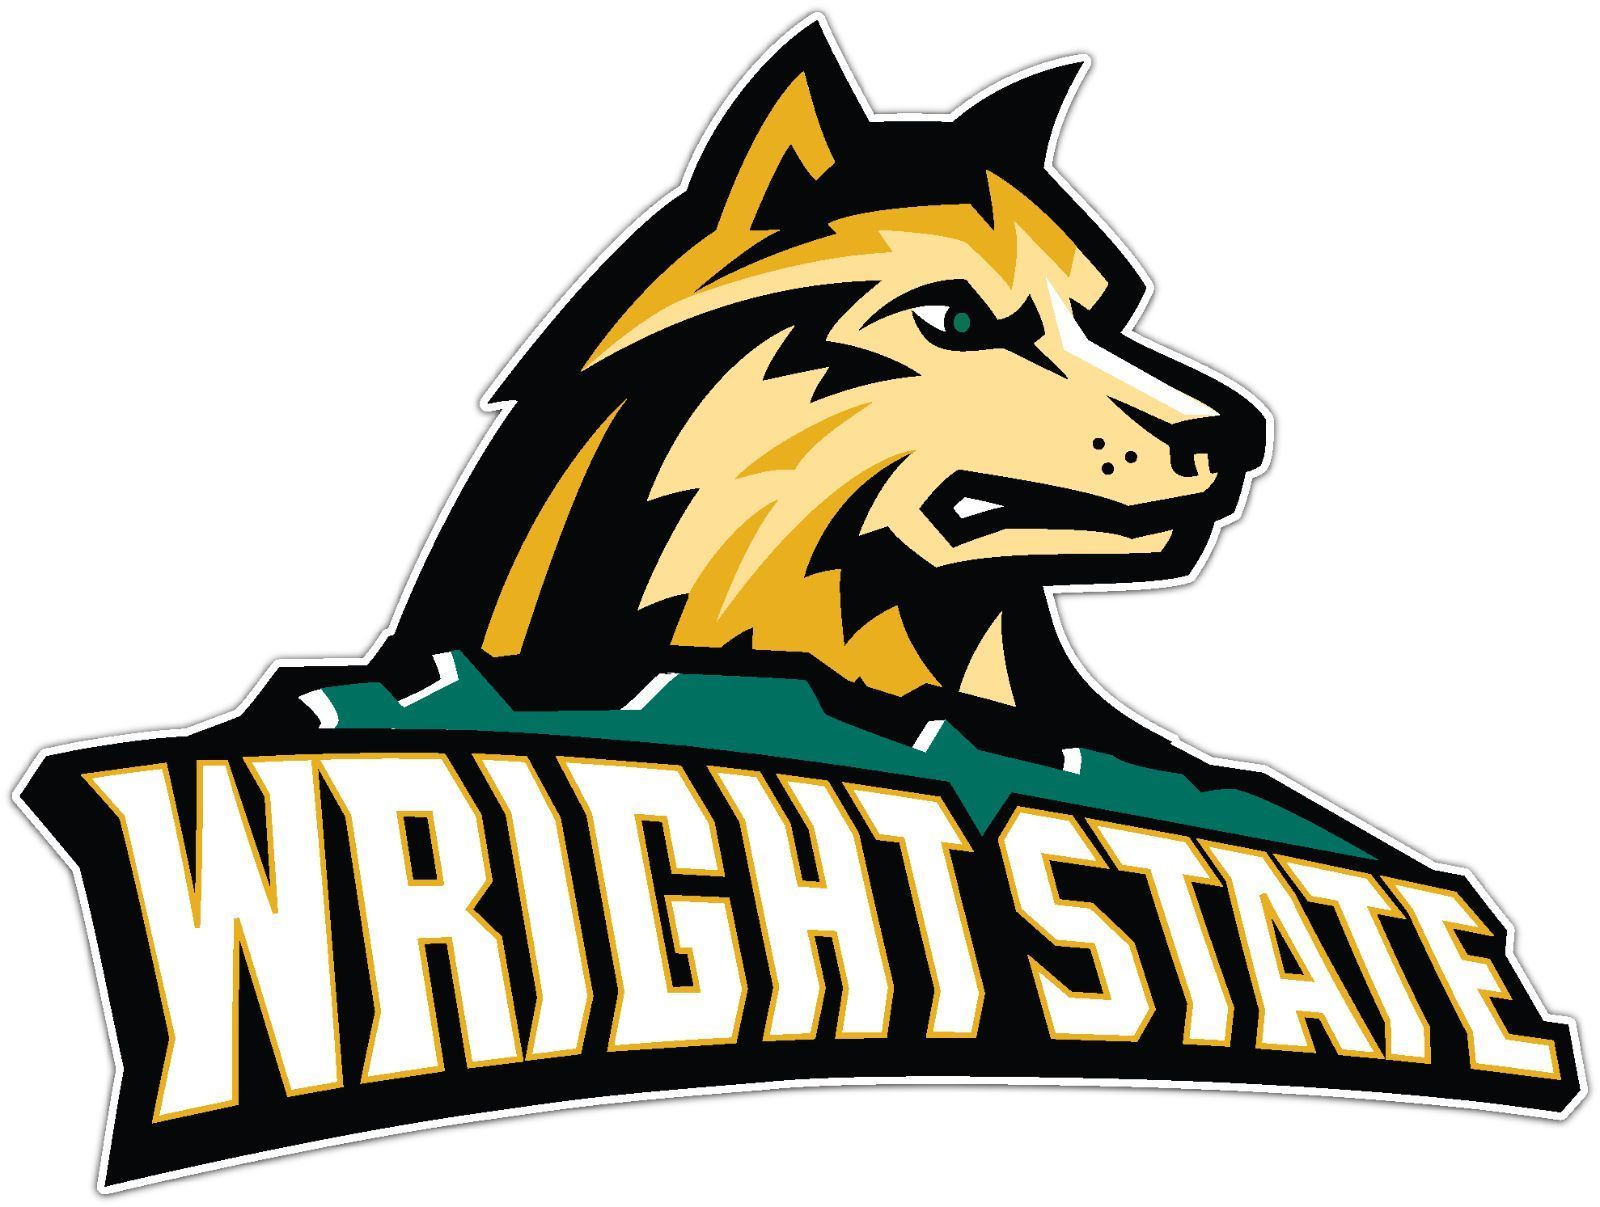 Wright State Raiders Ncaa Vinyl Car Bumper Window Sticker Decal 5 X4 Sports Logo Basketball Games For Kids Embroidery Logo [ 1207 x 1600 Pixel ]